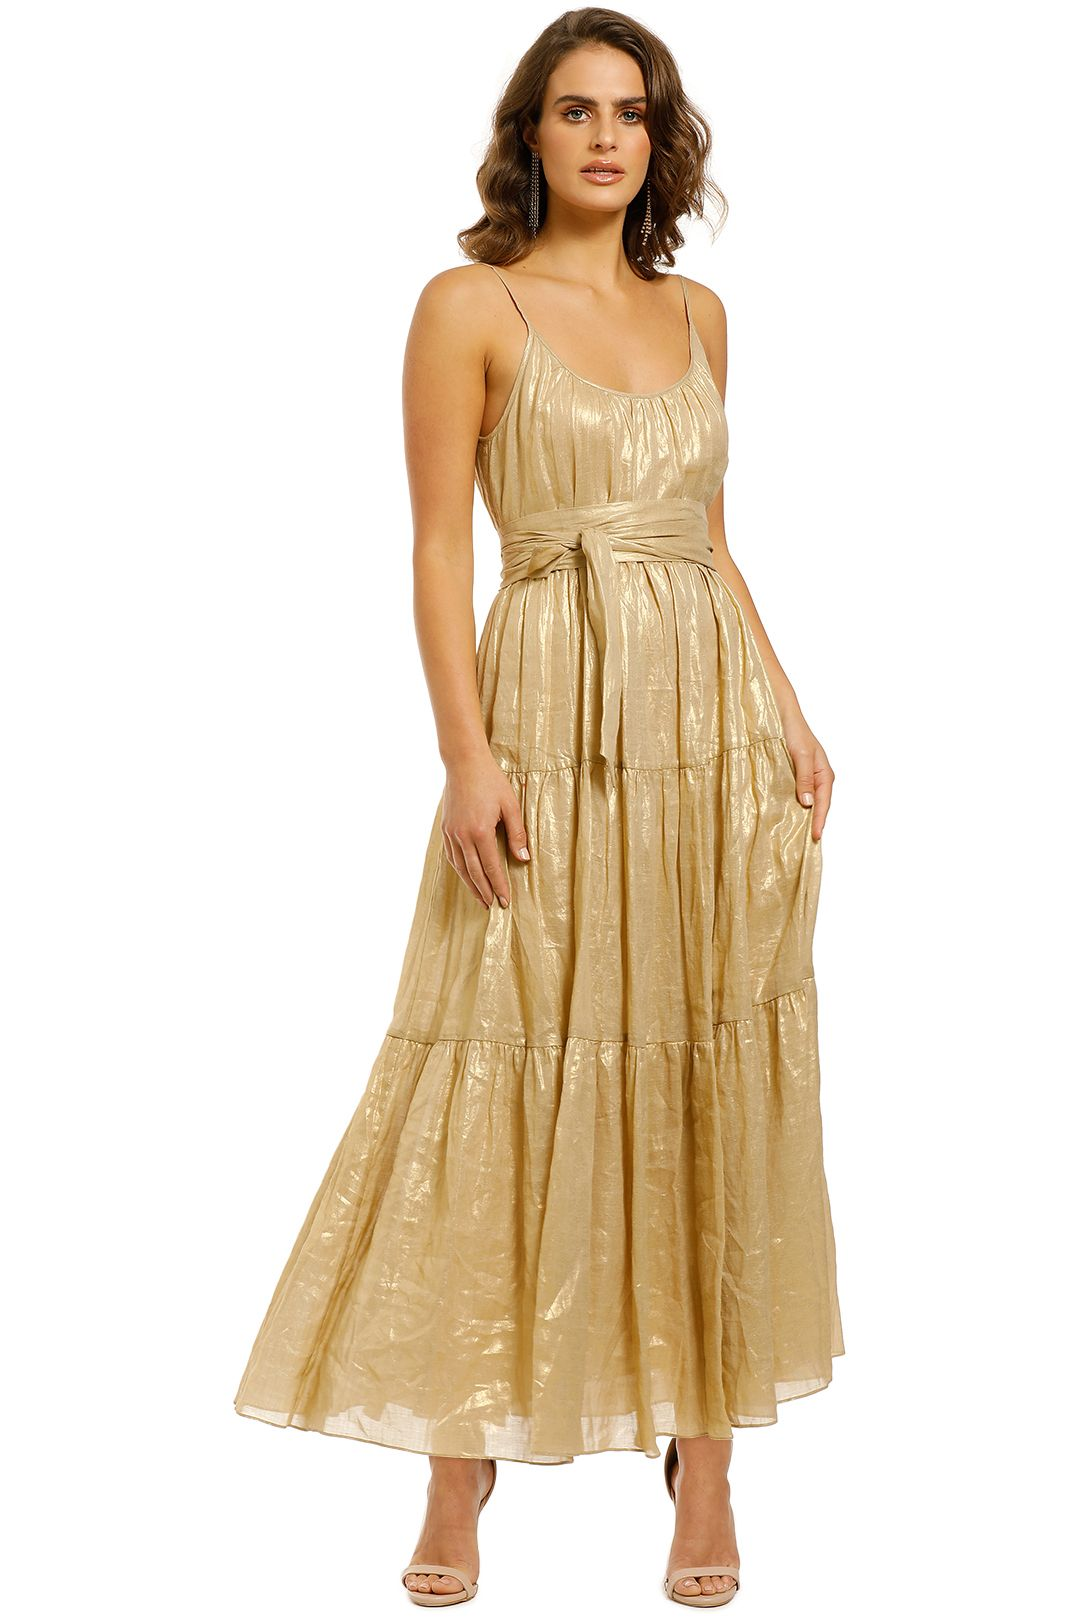 Ginger-and-Smart-Glorious-Maxi-Dress-Light-Gold-Front